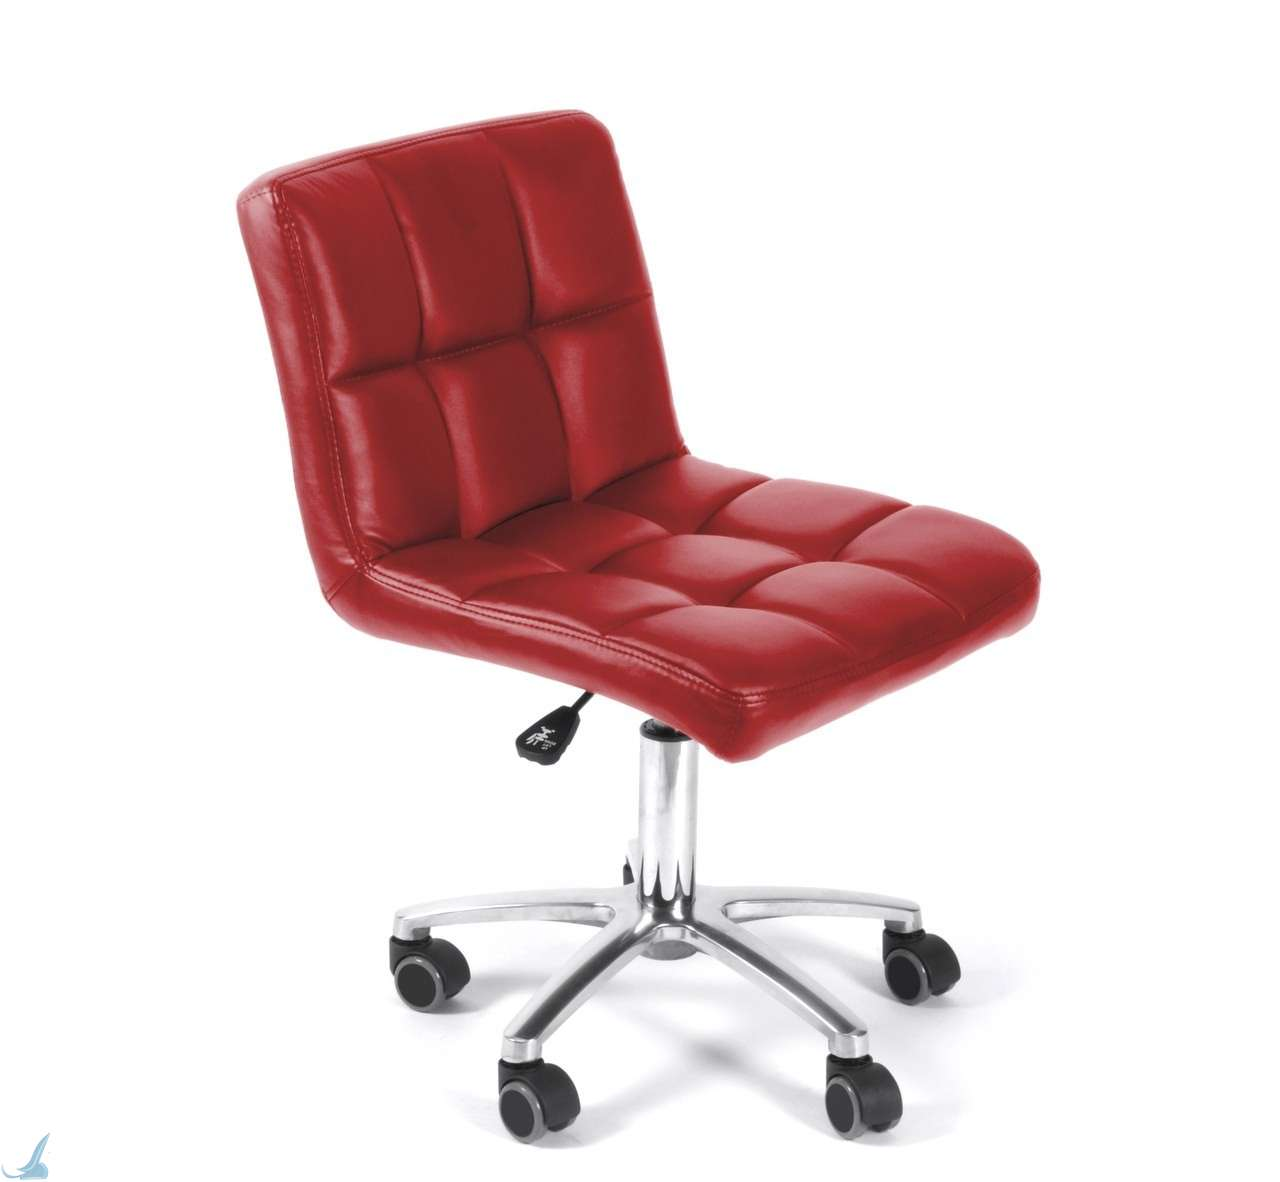 Red Salon Chairs Nail Salon Stools Ovationspas